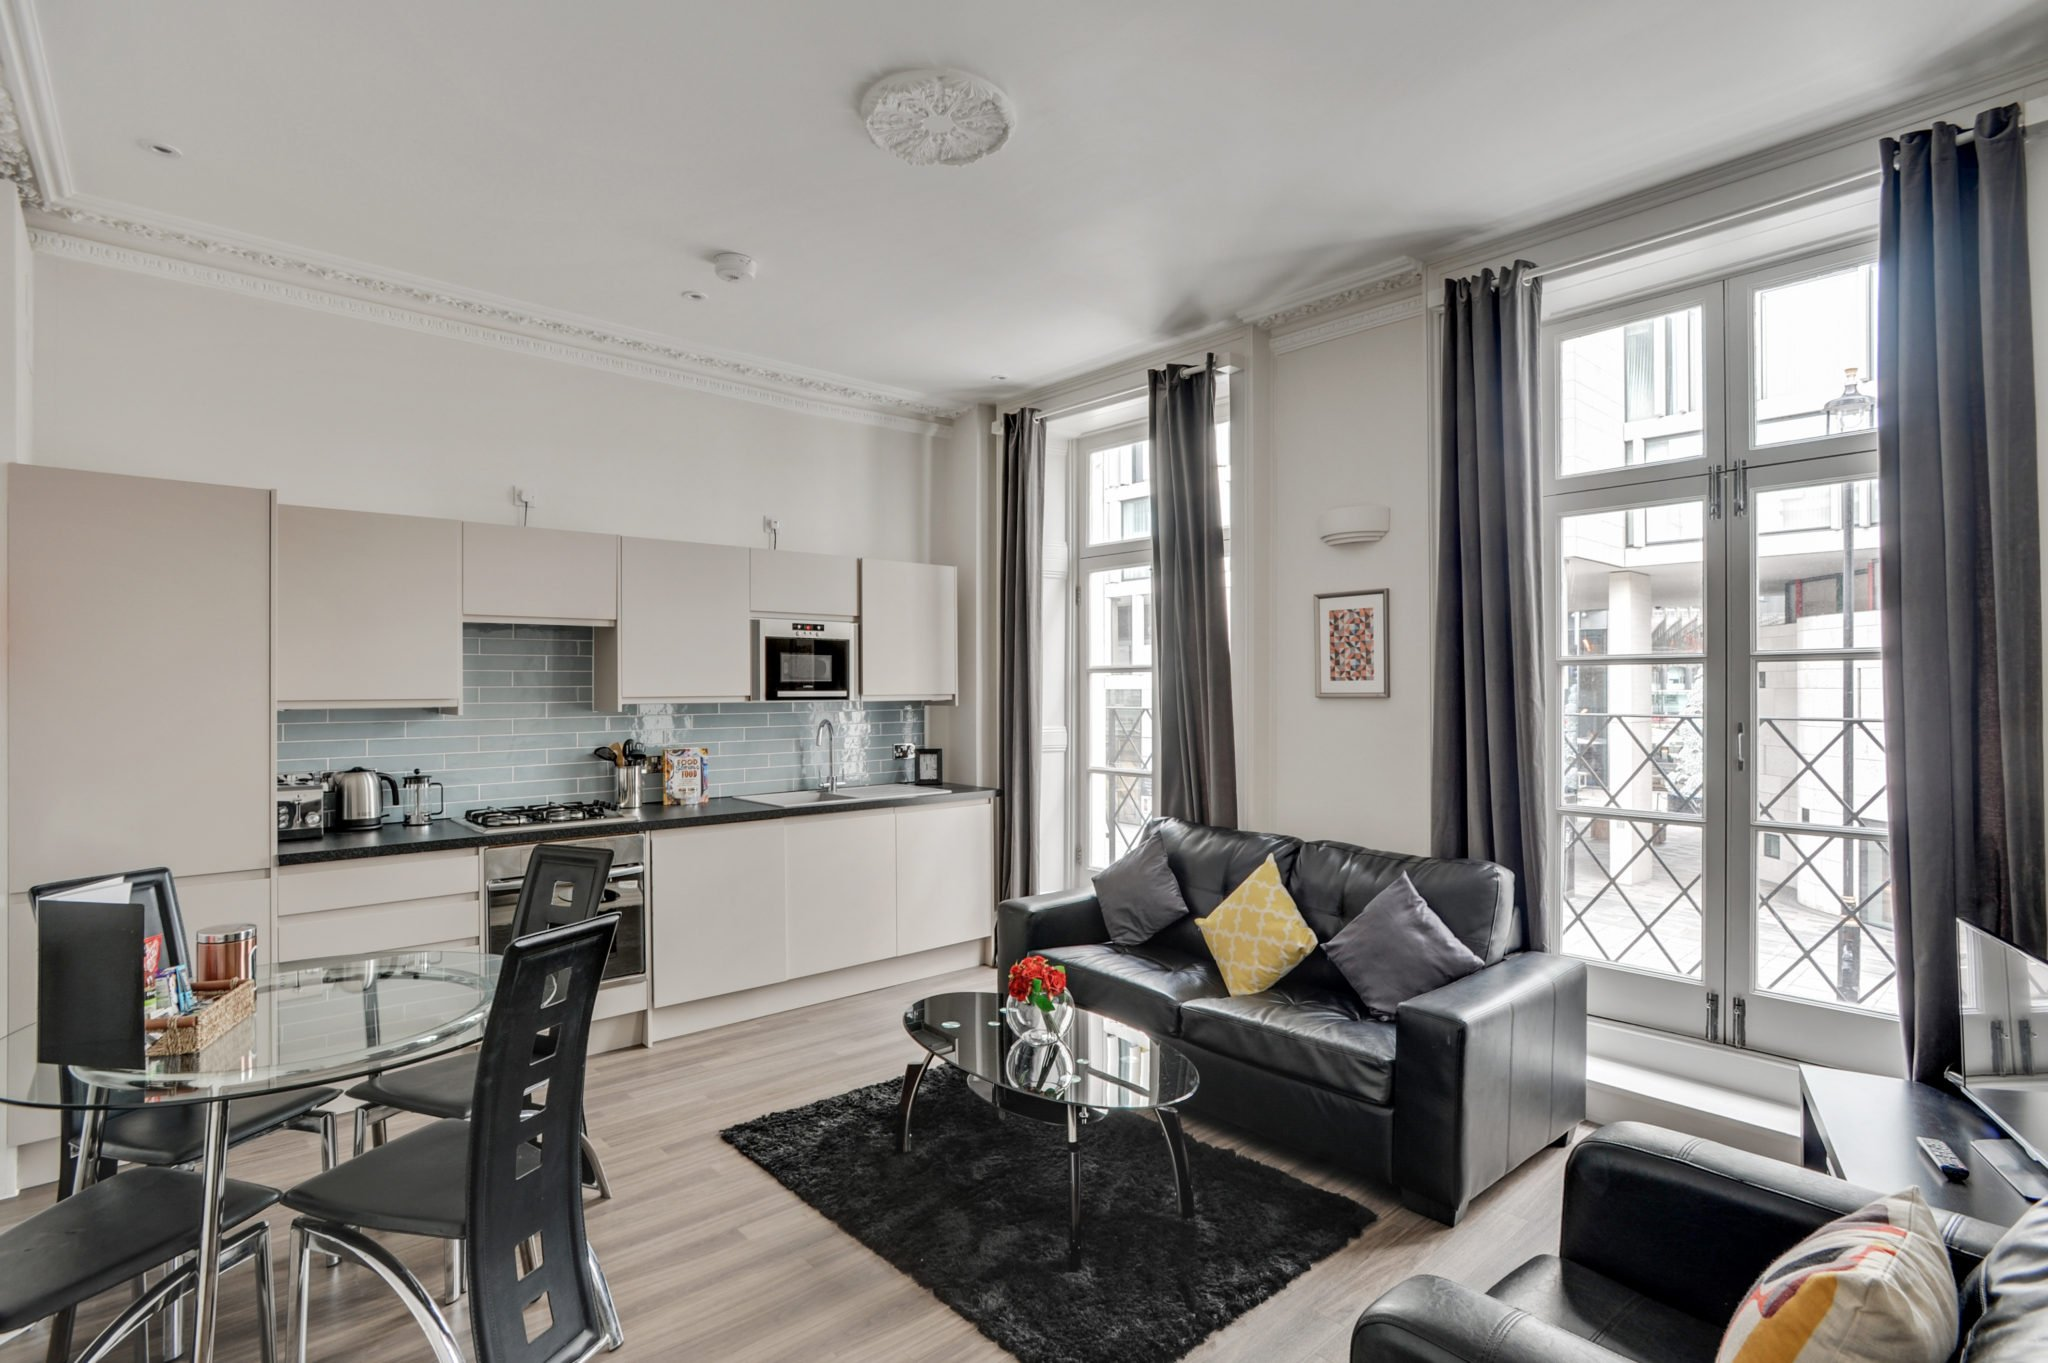 Central London Serviced Apartments London Short Stay Accommodation